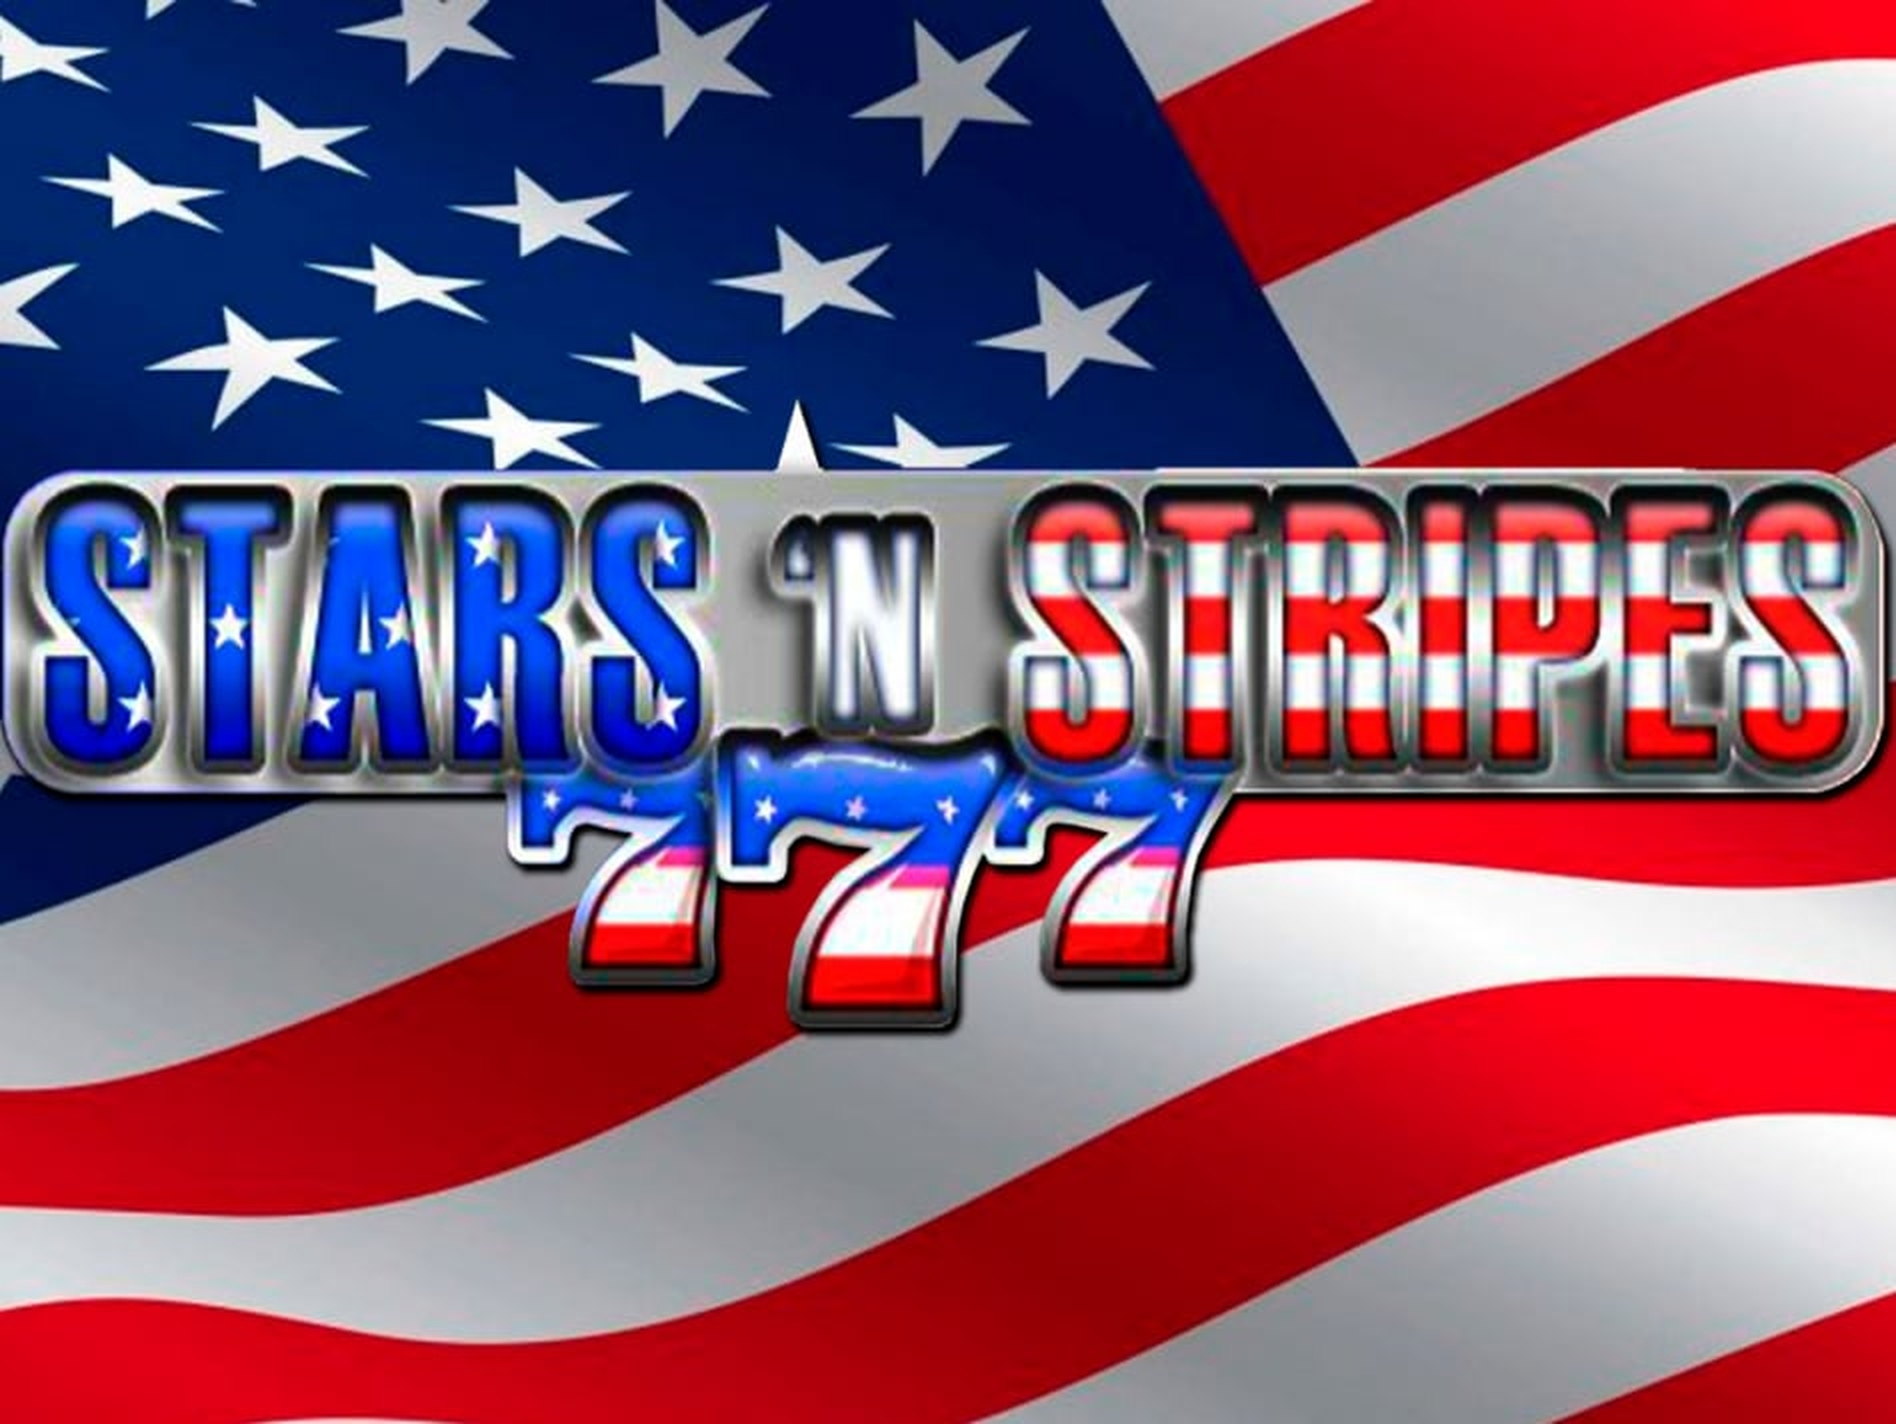 Se Stars And Stripes Online Slot Demo Game, saucify